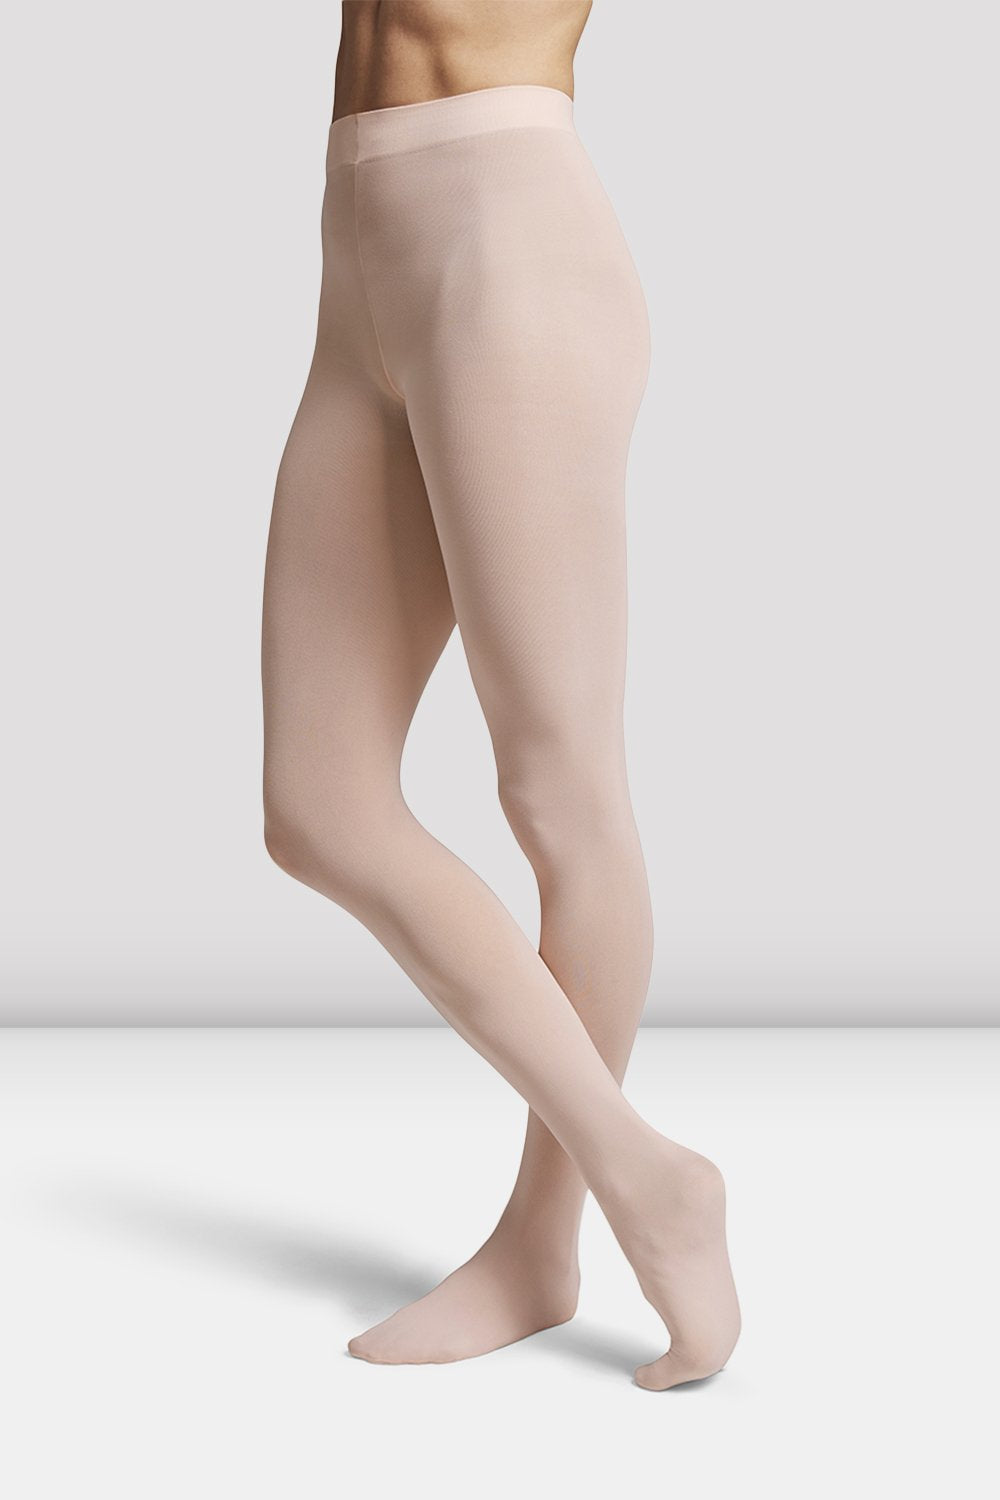 Girls Footed Tights - BLOCH US